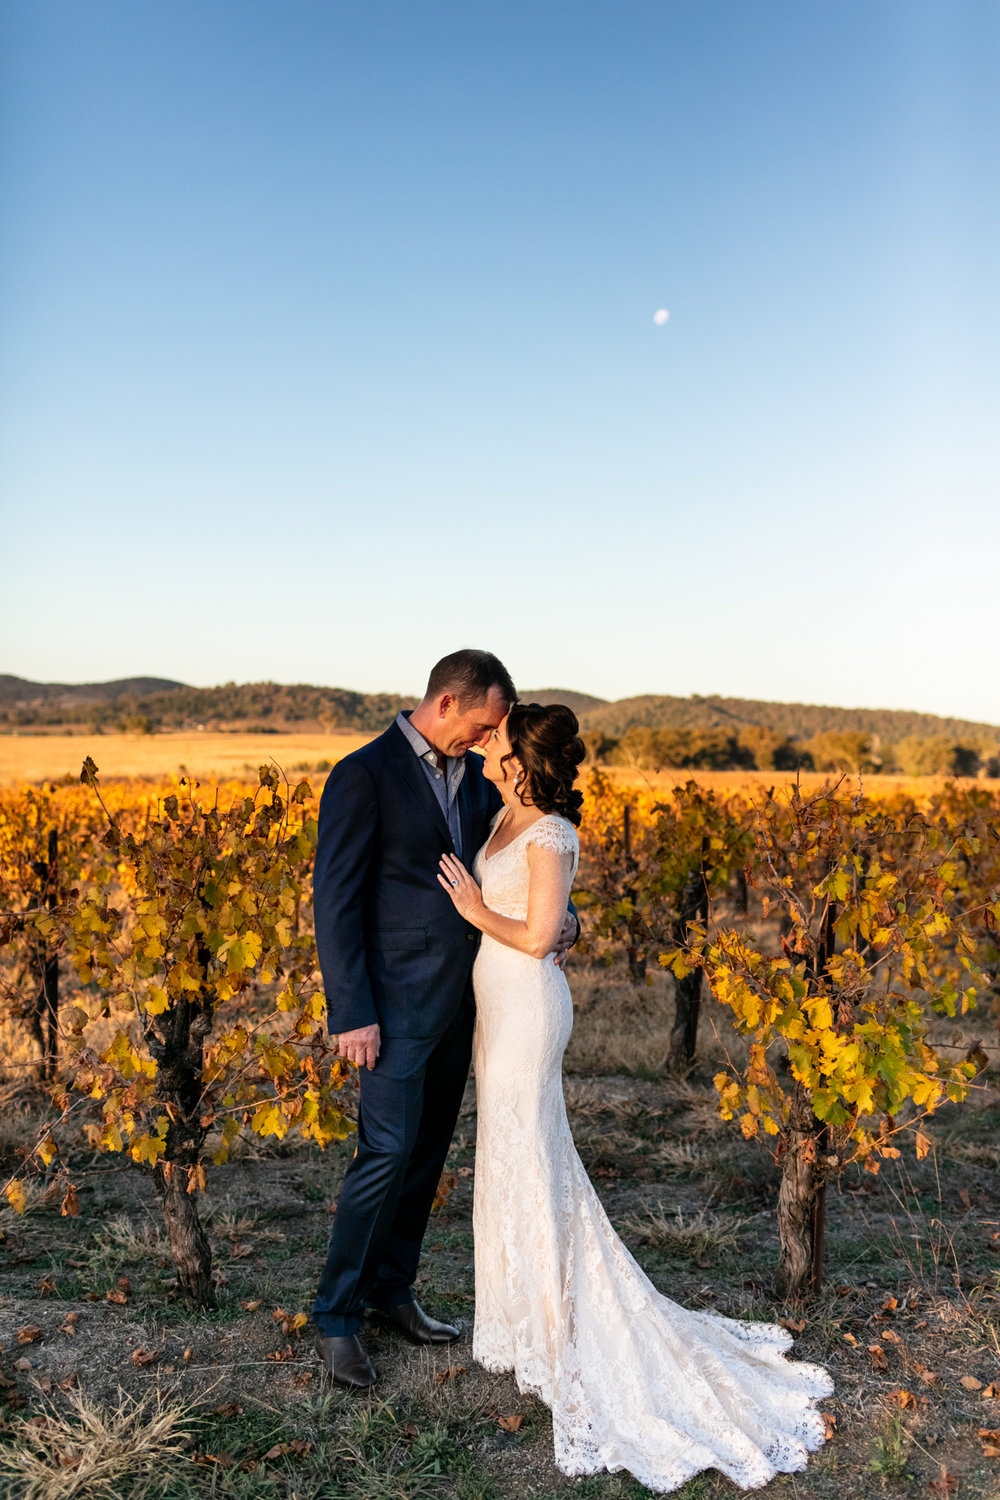 Mudgee wedding photography - Zin House. Kirsten Cunningham Photography.